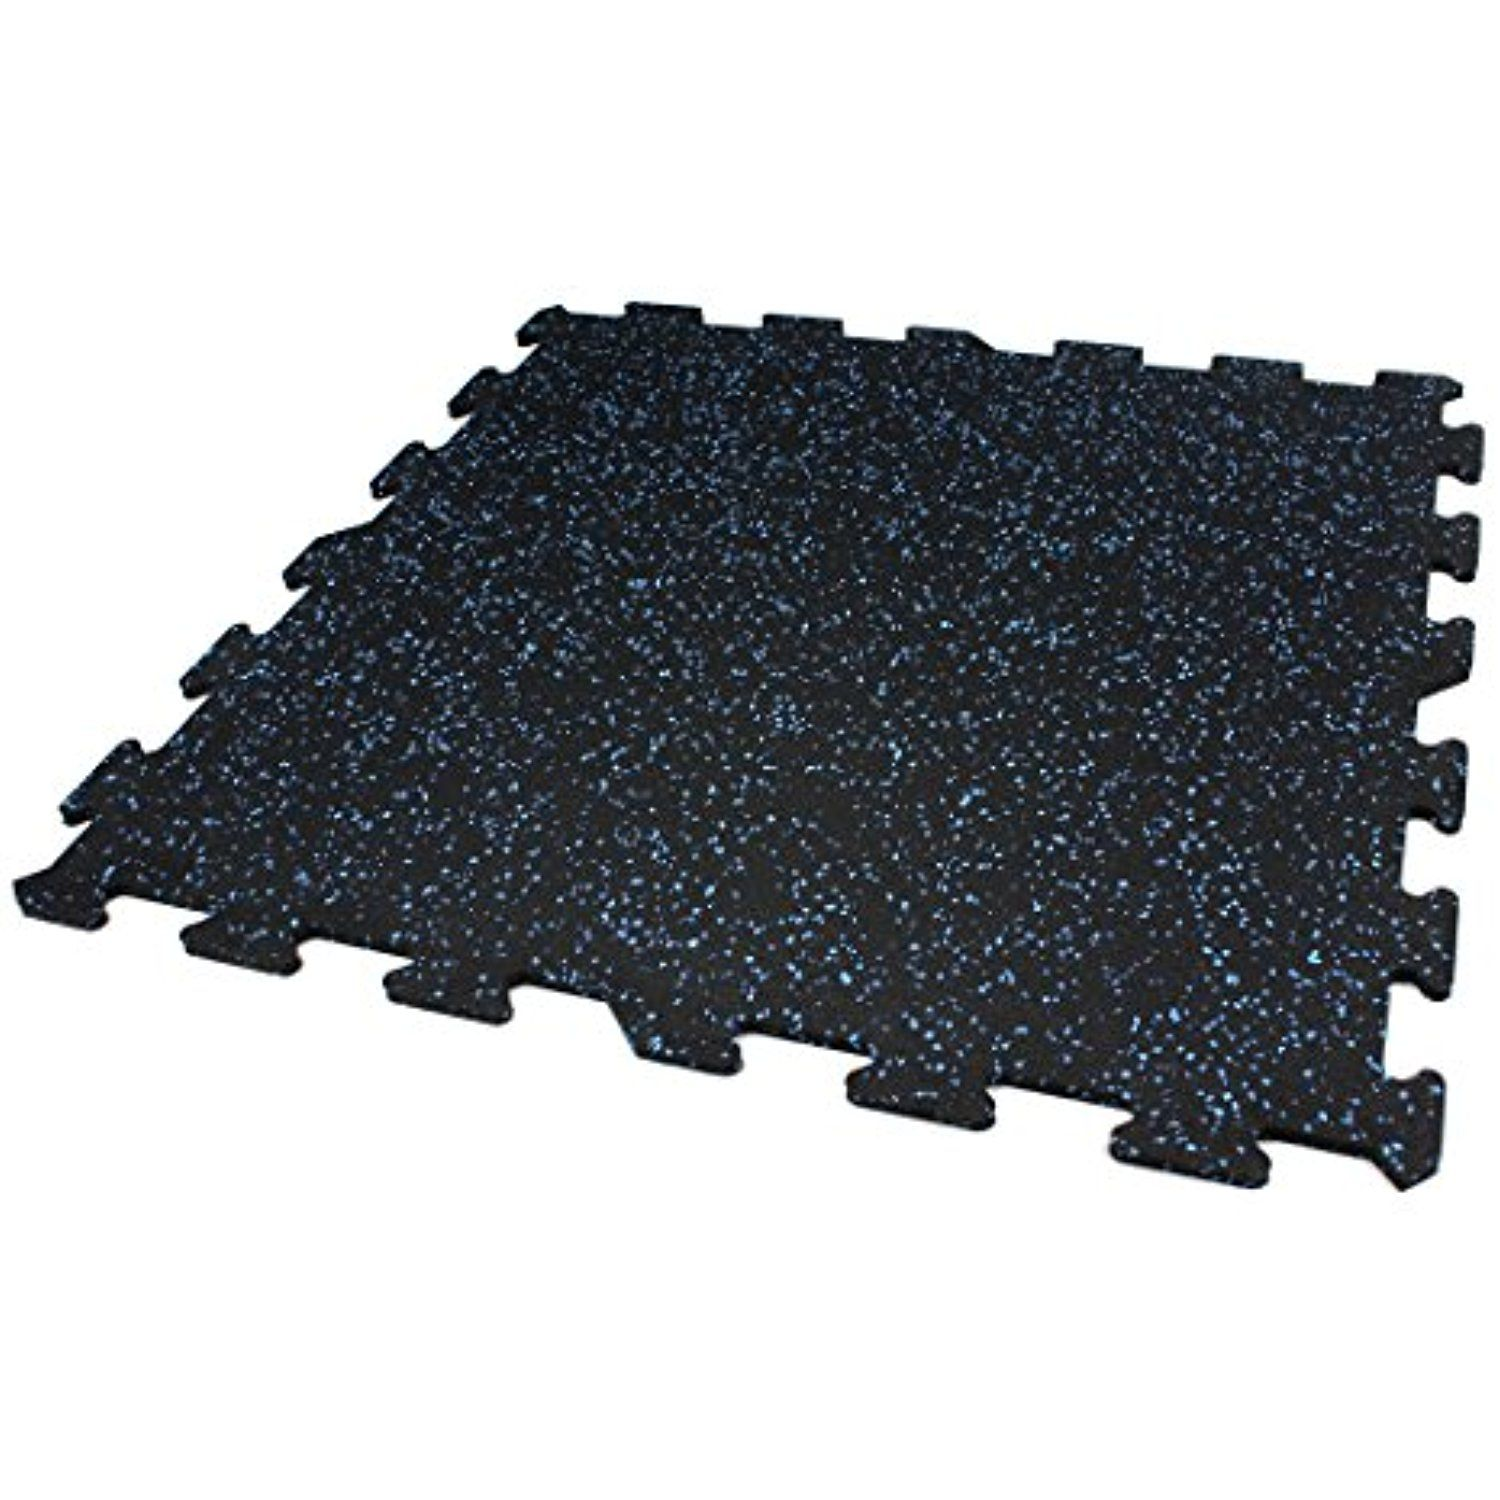 Rubber Gym Flooring Installation Cost: IncStores 8mm Strong Rubber Tiles (23in X 23in Tiles/Multi